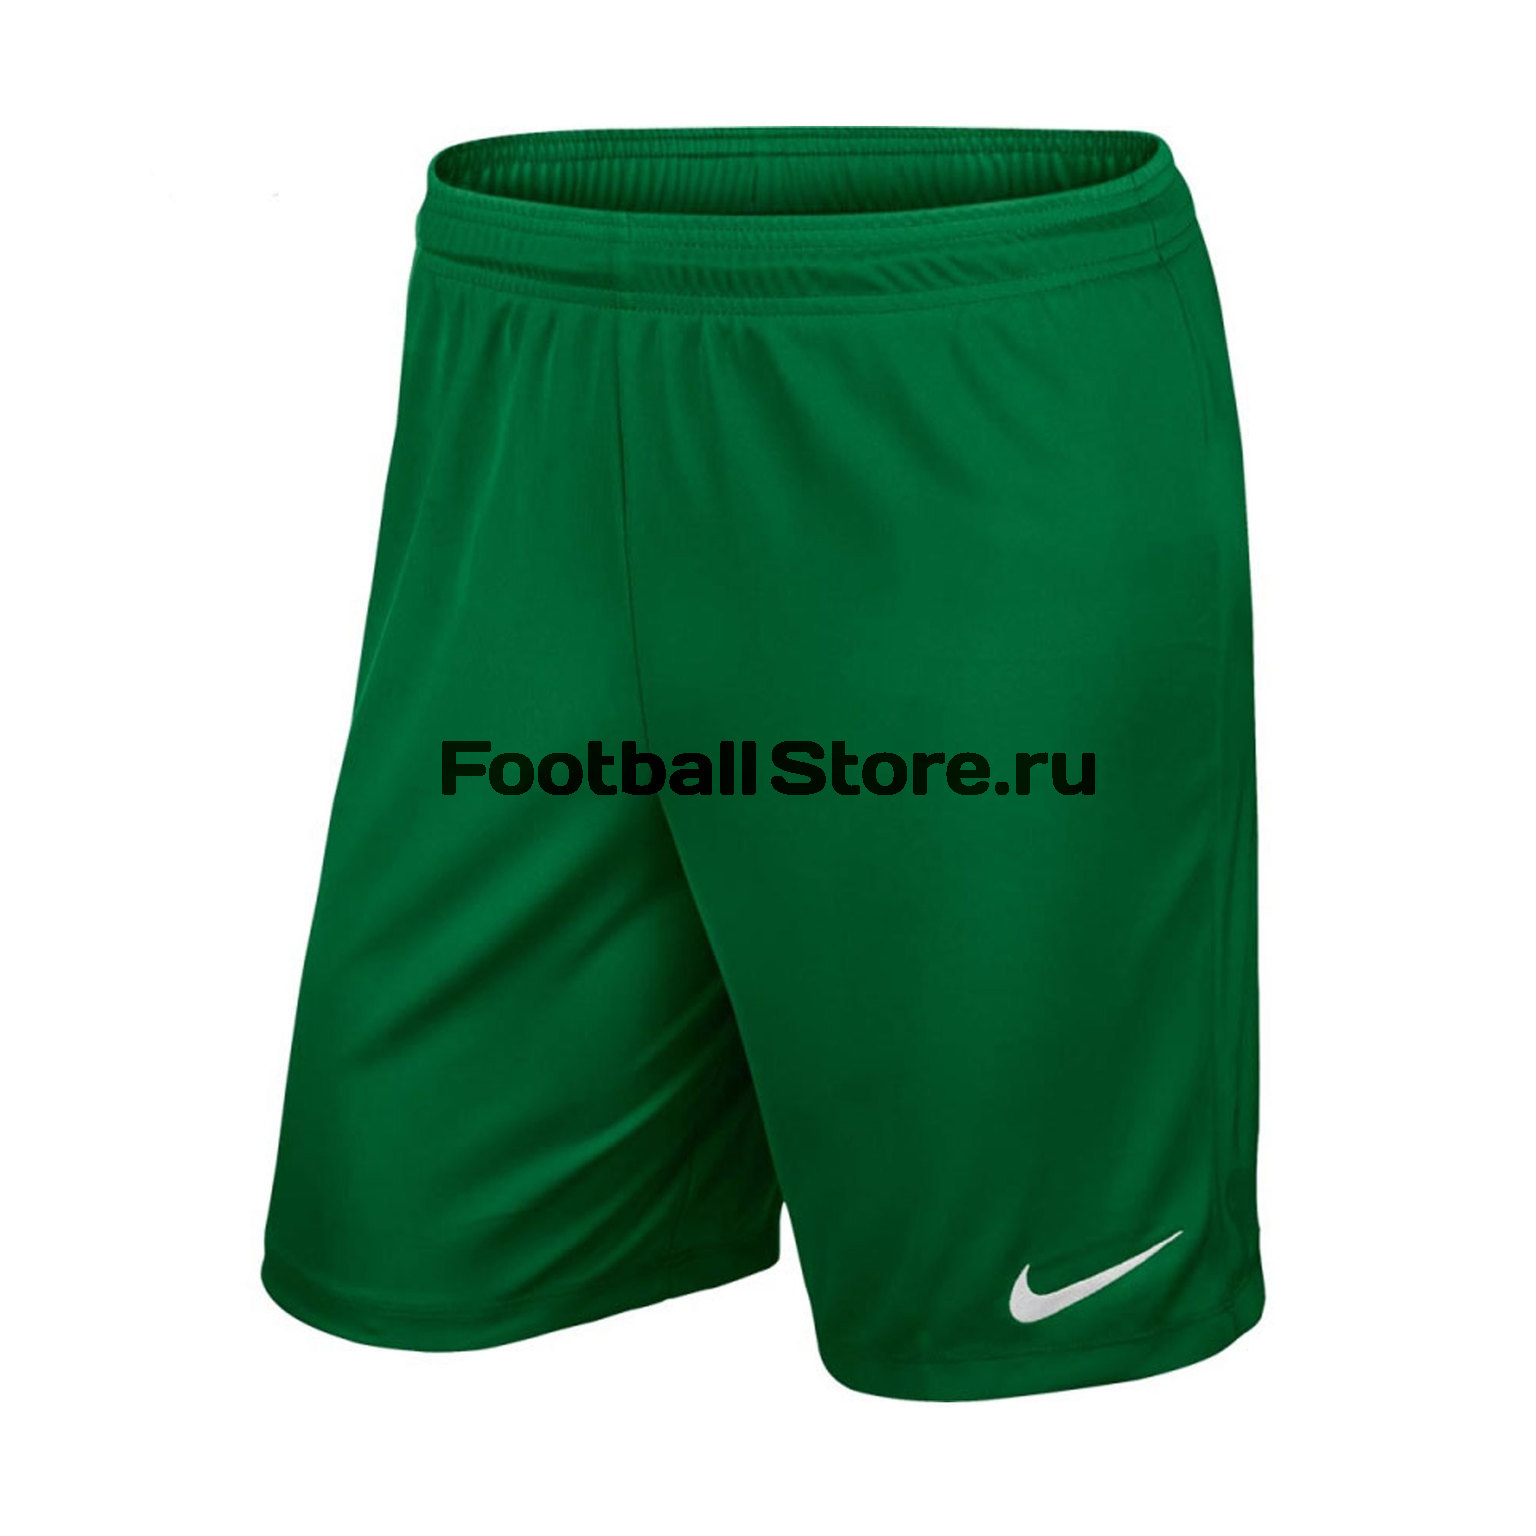 цена на Шорты Nike Park II KNIT Short NB 725887-302